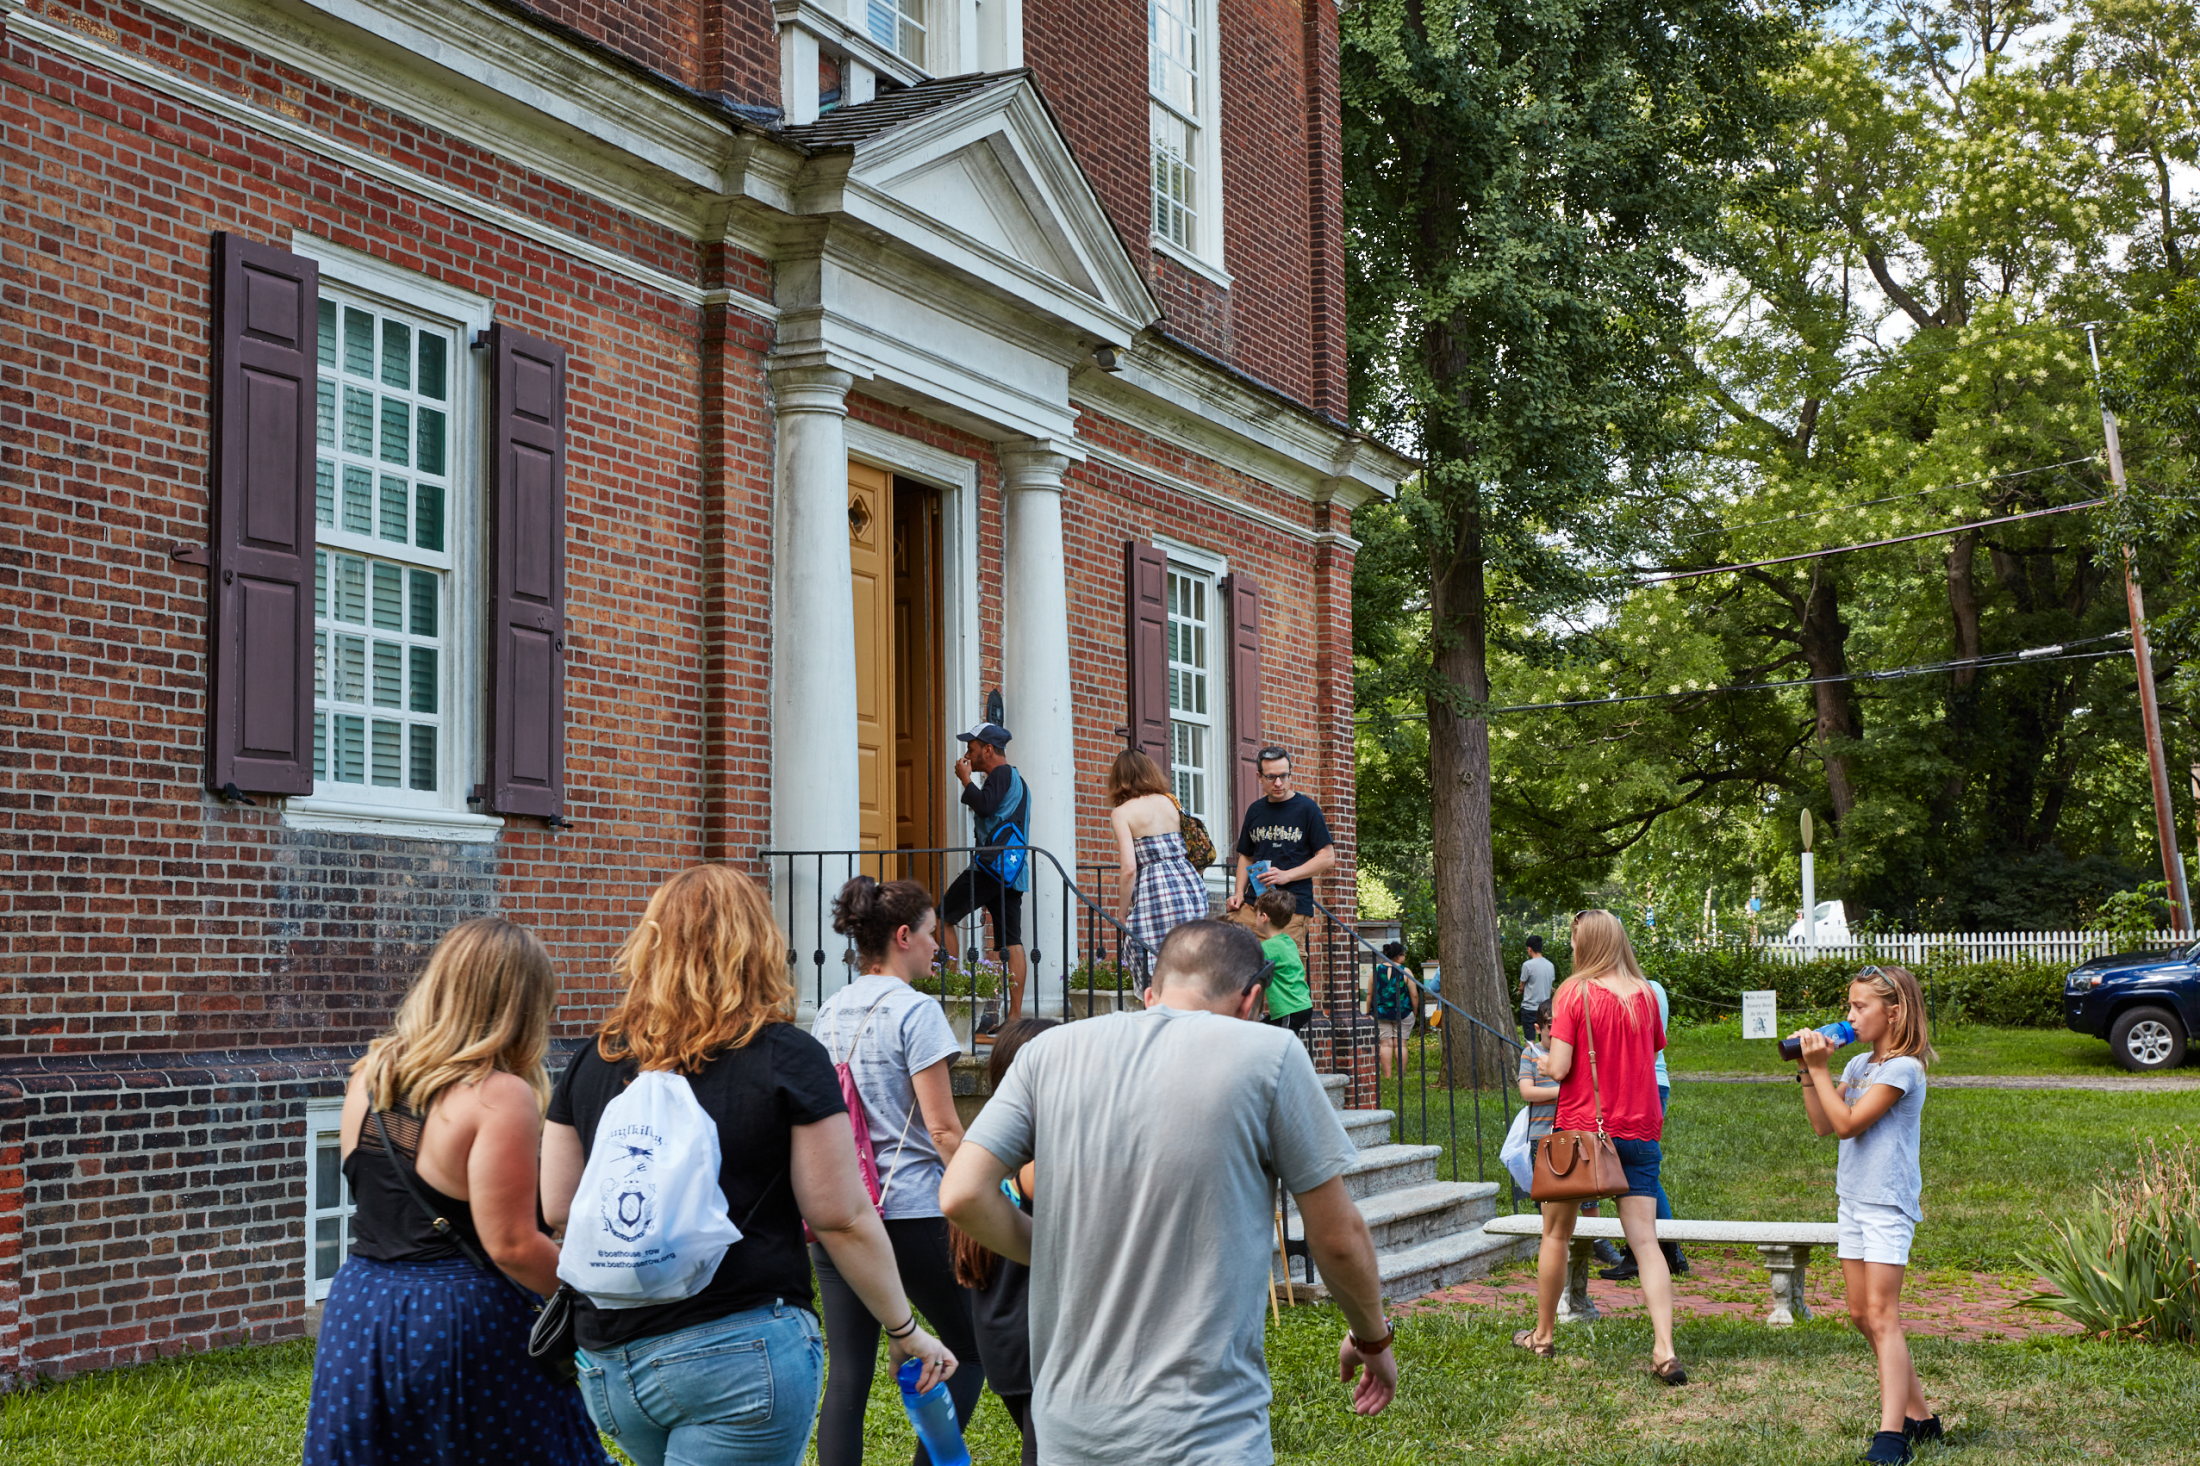 Art and Documentary Photography - Loading 04-08-18_WoodfordMansion-PeachFestival_399.png